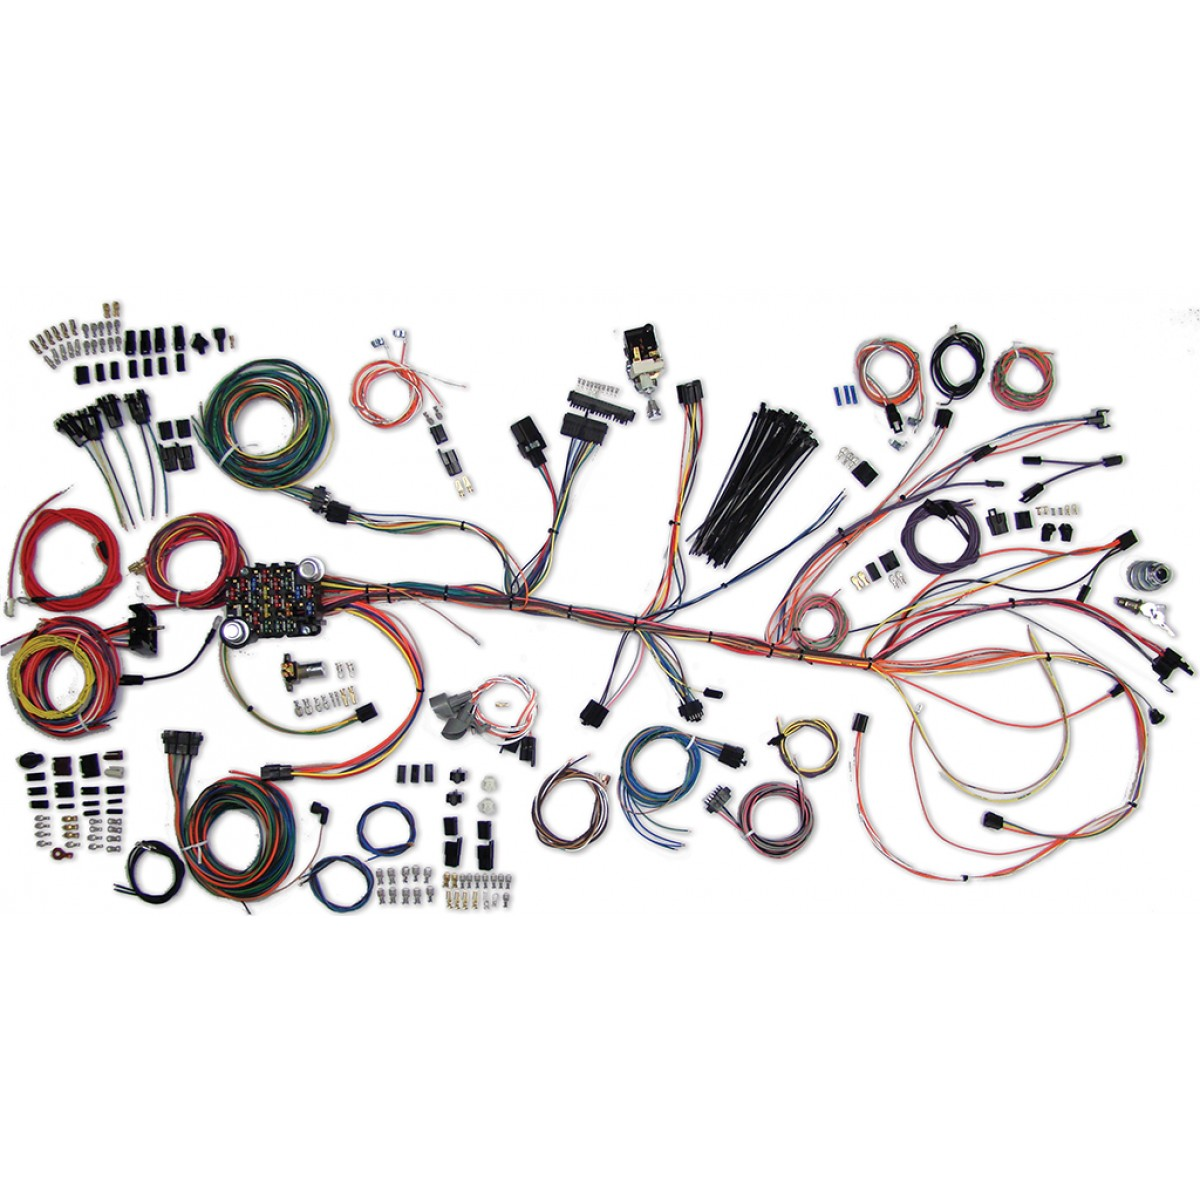 1964 1967 chevelle wiring harness kit chevelle wiring part rh code510 com